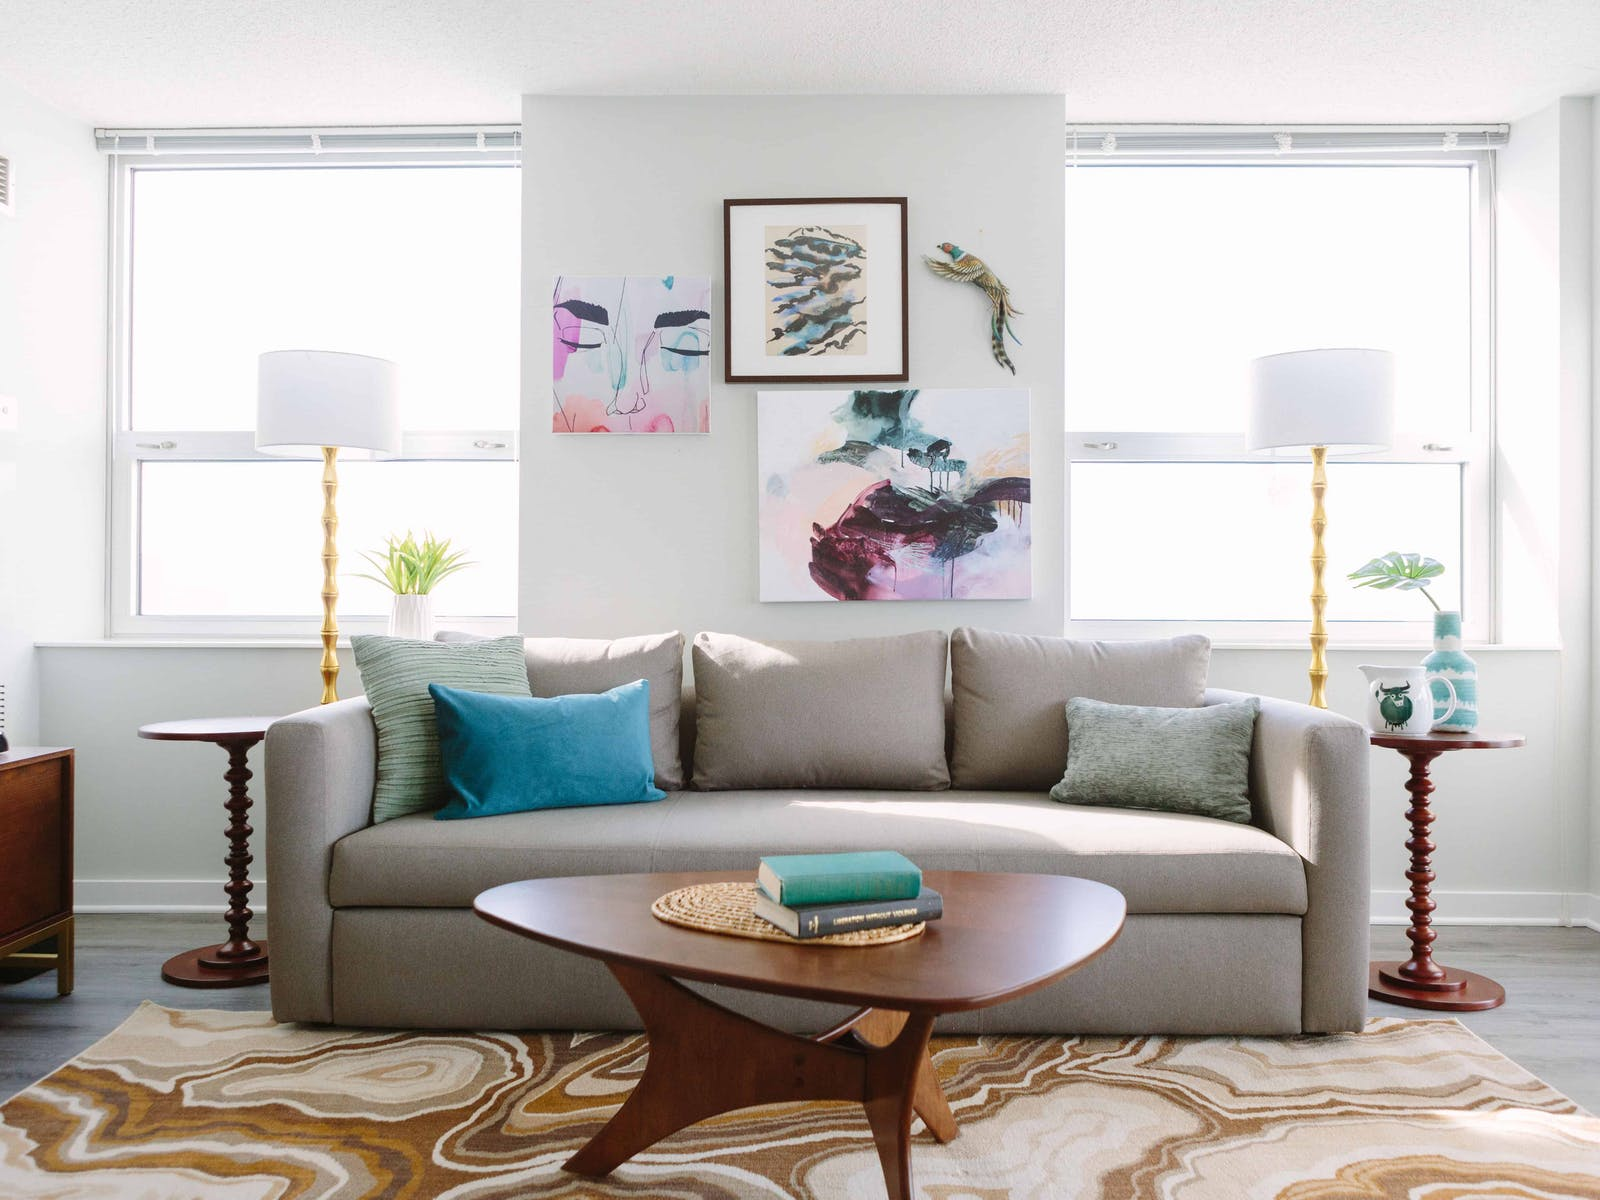 Living room of vacation rental with trendy artwork, area rug and decorative pillows